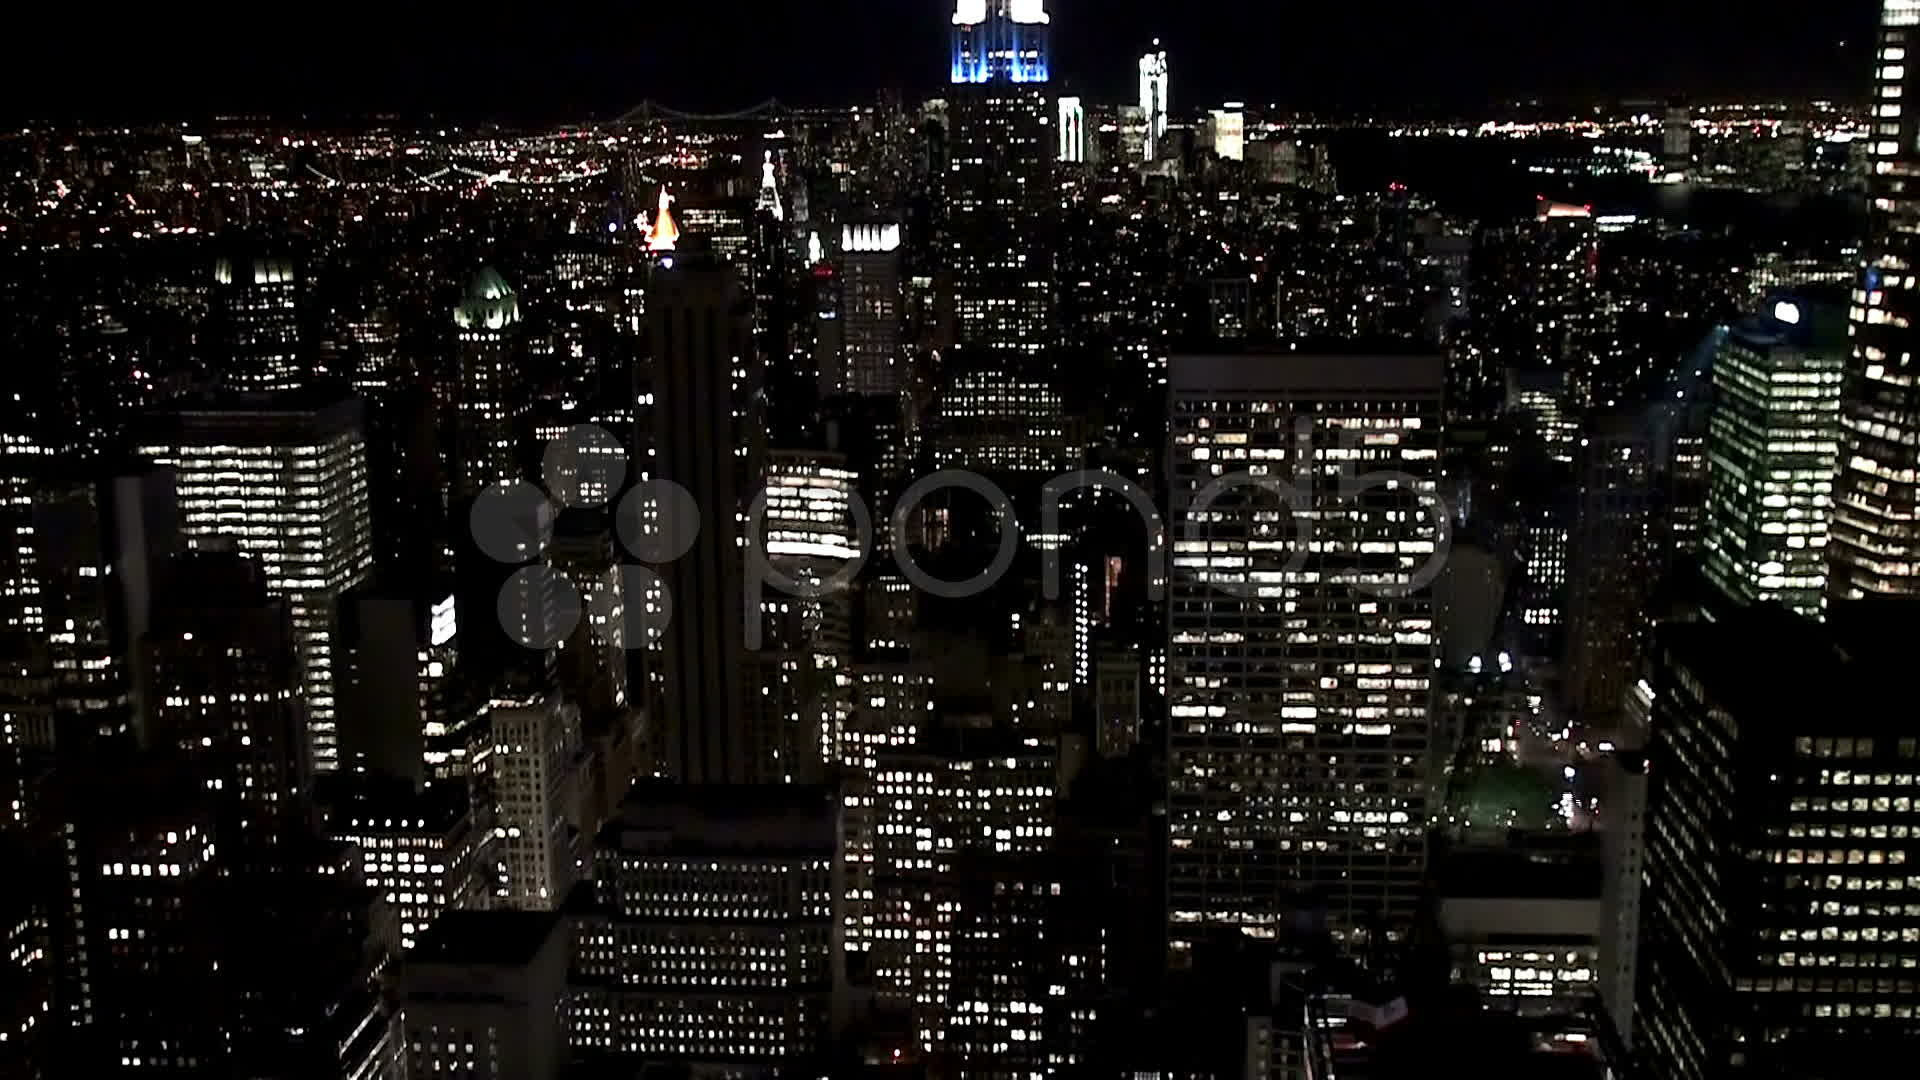 Nighttime City Hd Wallpapers 68 Images